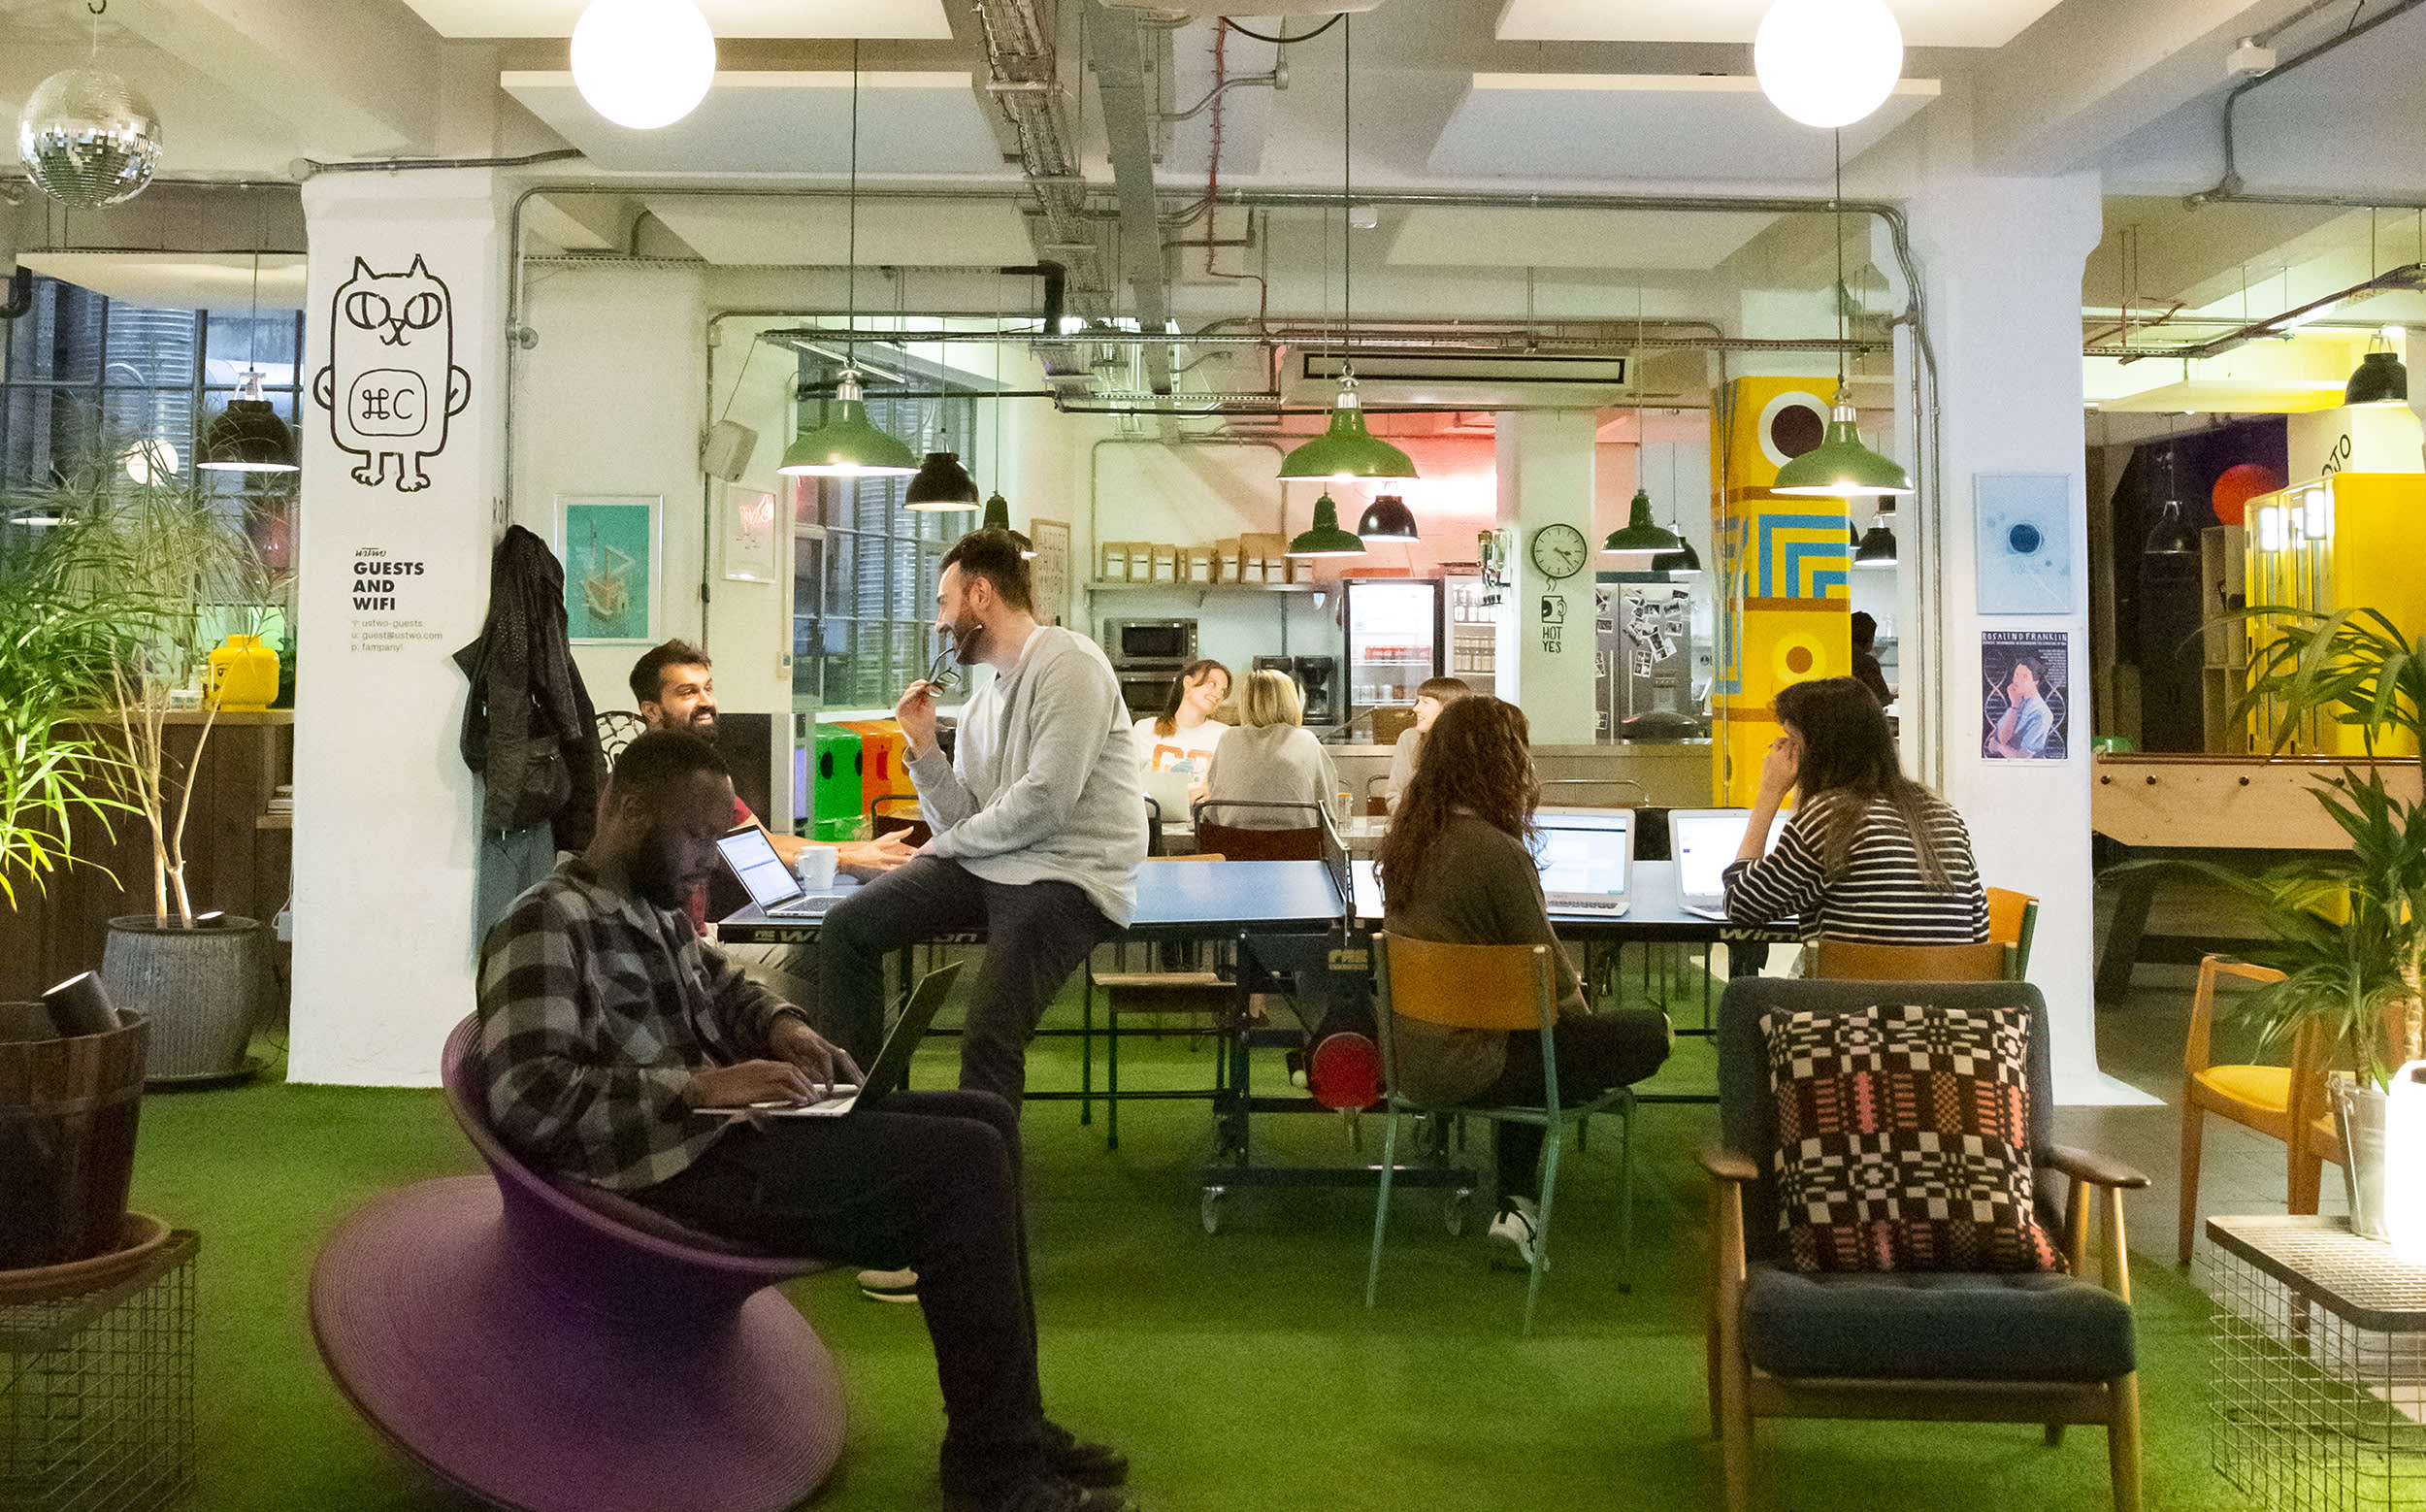 Life in the ustwo London studio